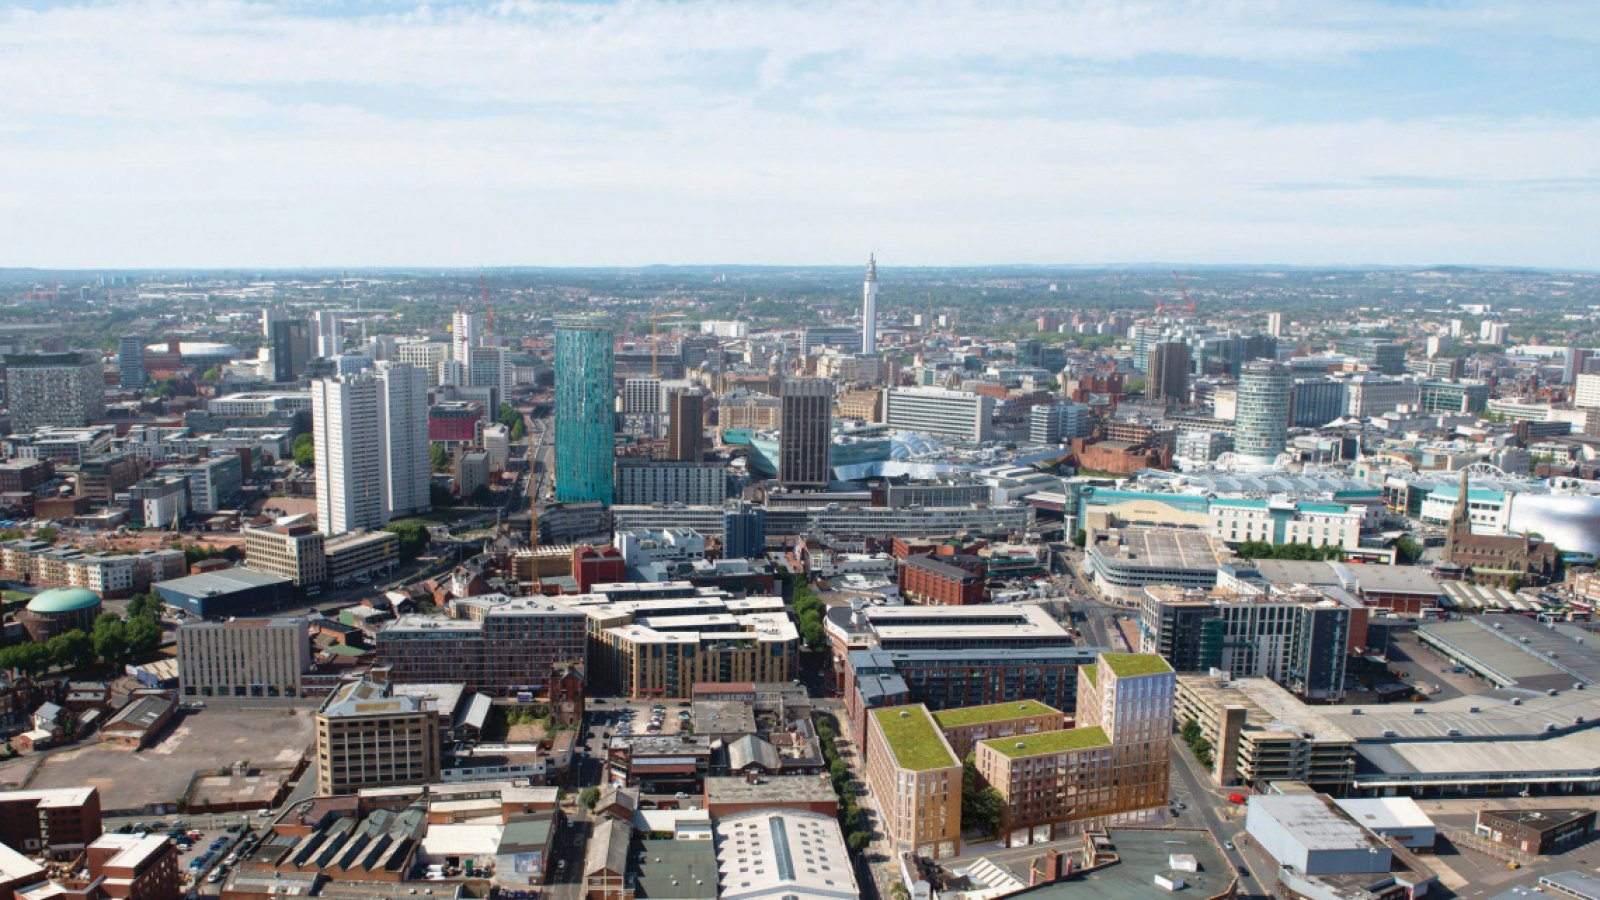 Galliard and Apsley to develop £500m regeneration projects - Planning, BIM & Construction Today